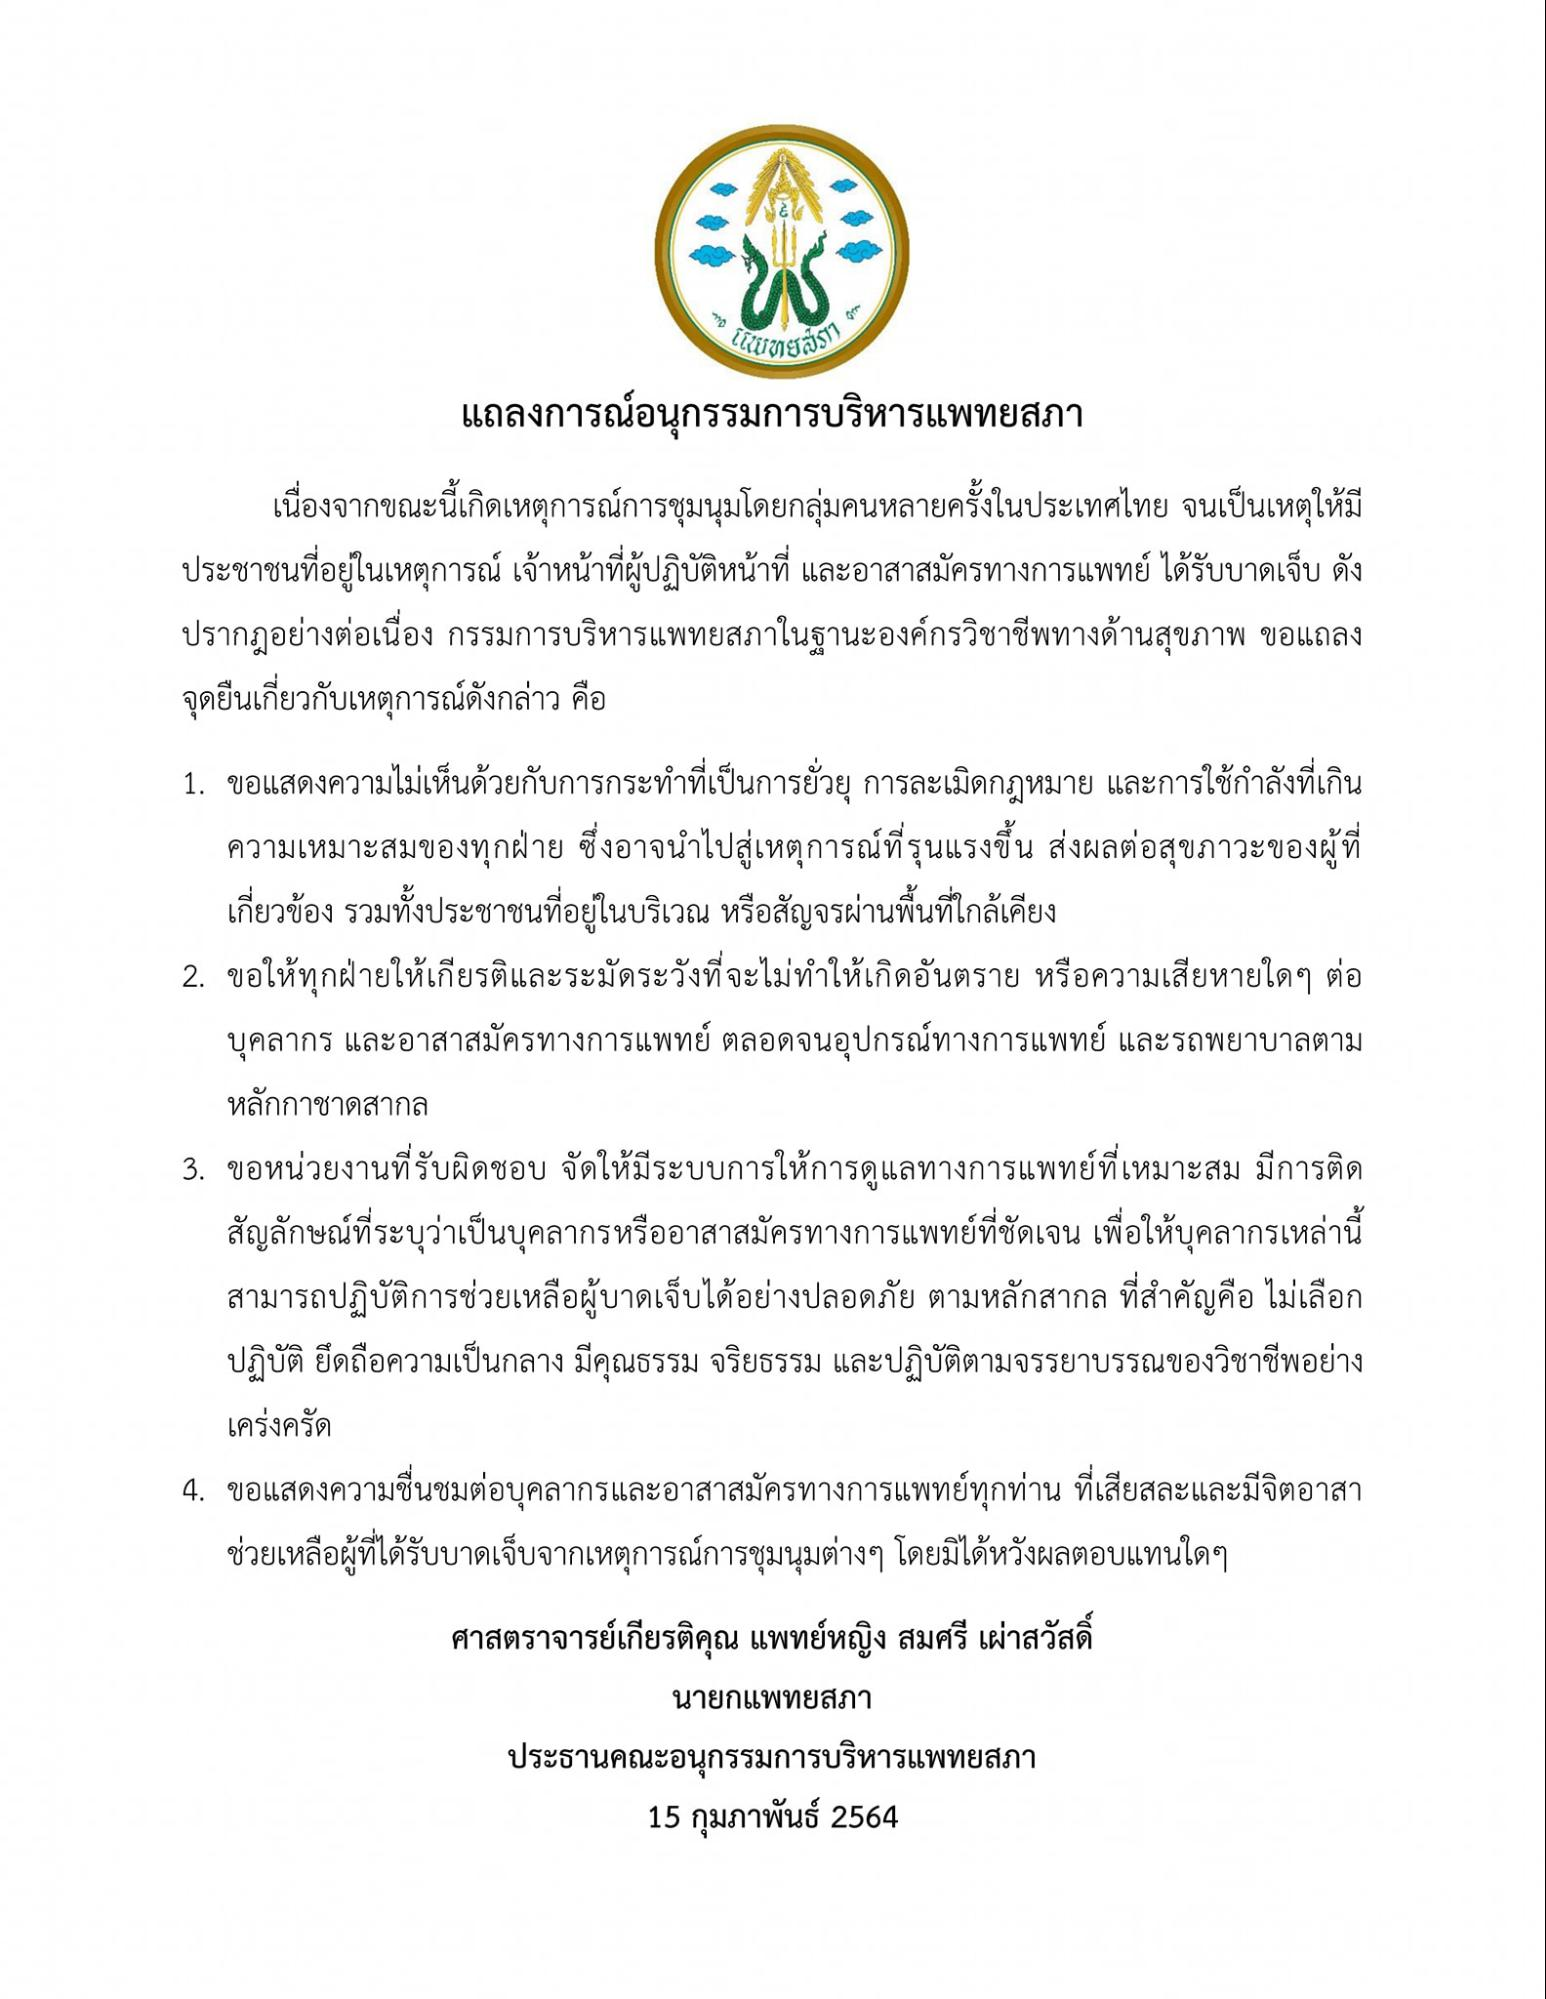 statement from the Medical Council of Thailand